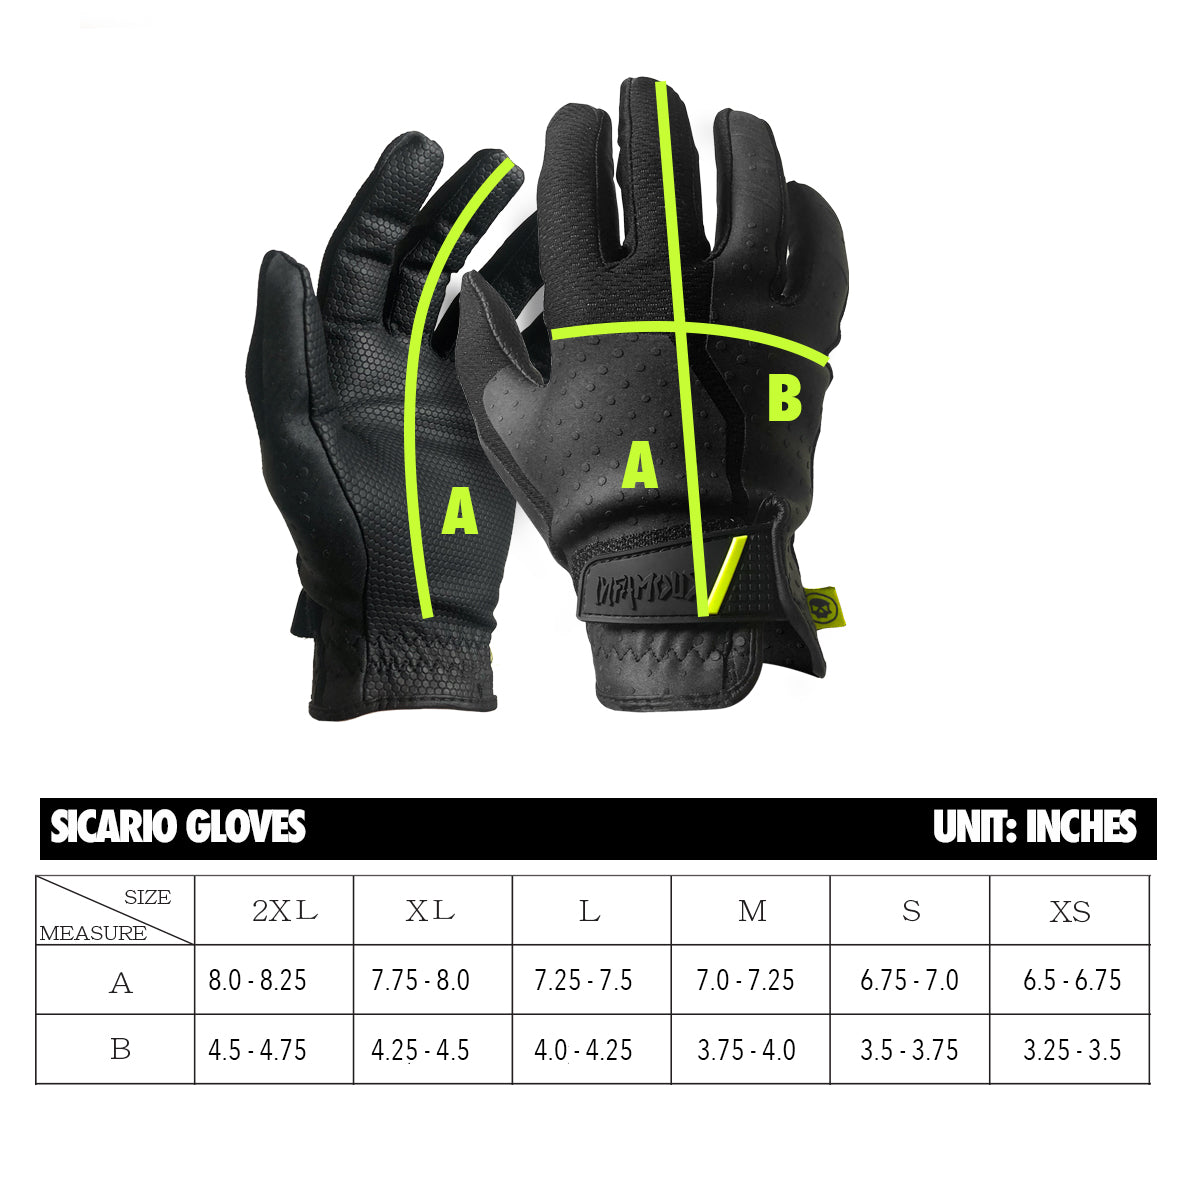 Infamous Sicario Gloves Sizing Chart